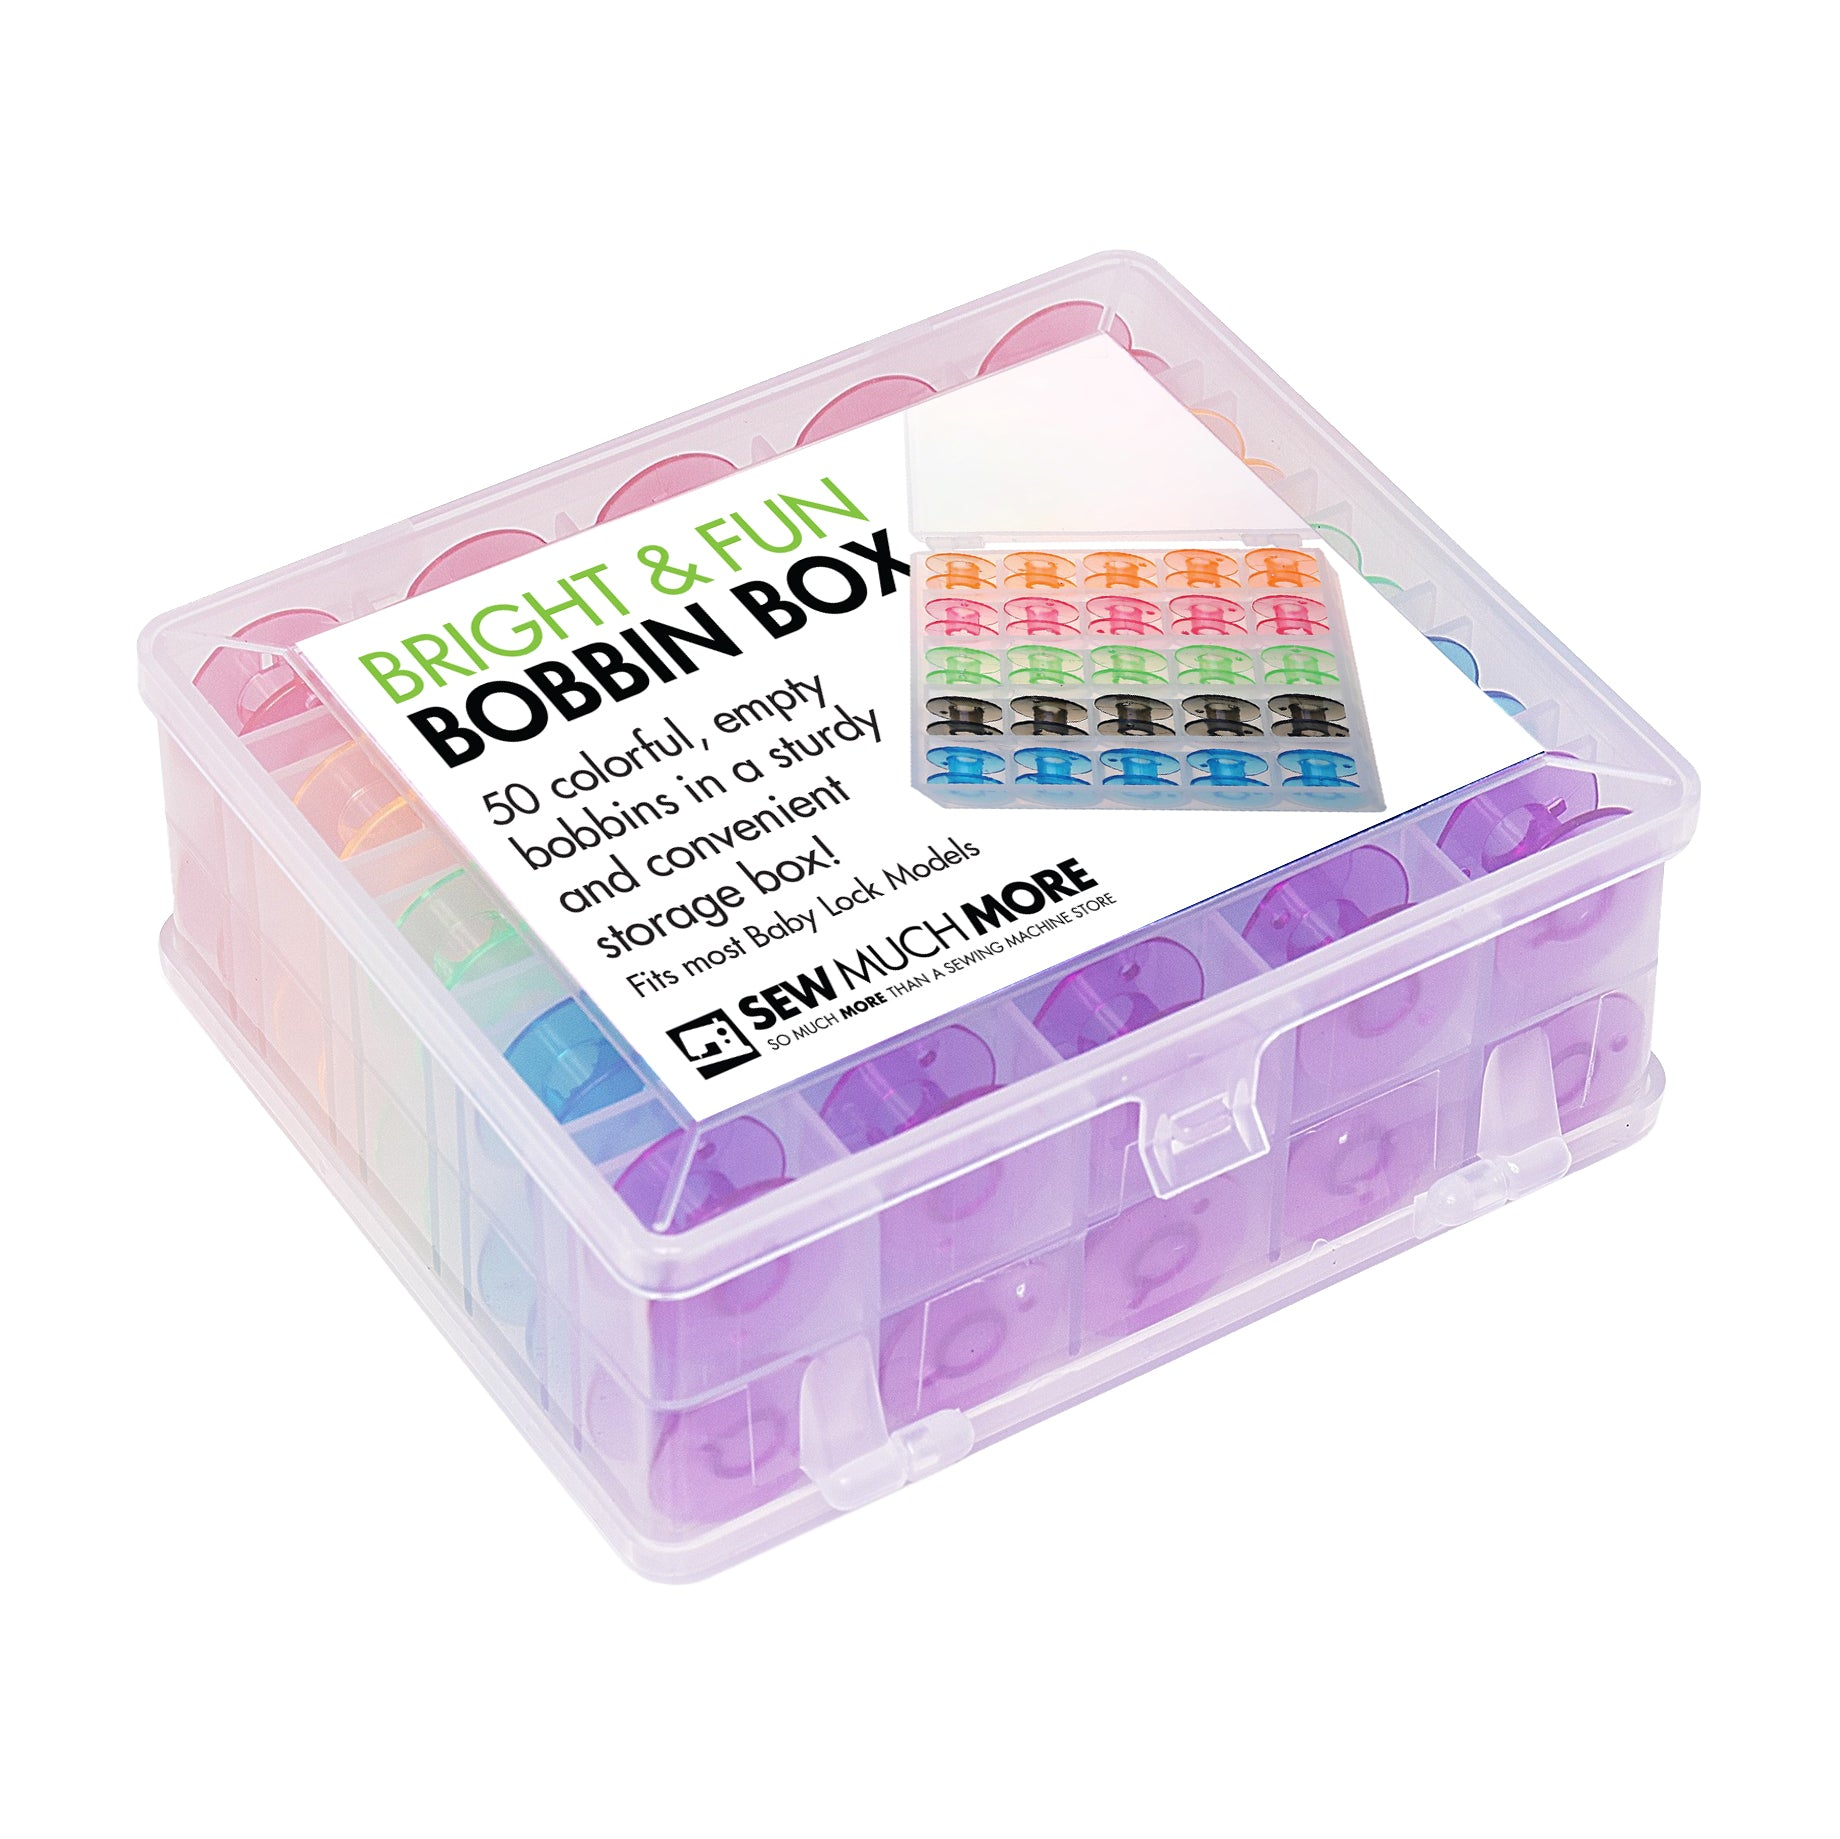 Bright & Fun Bobbin Box